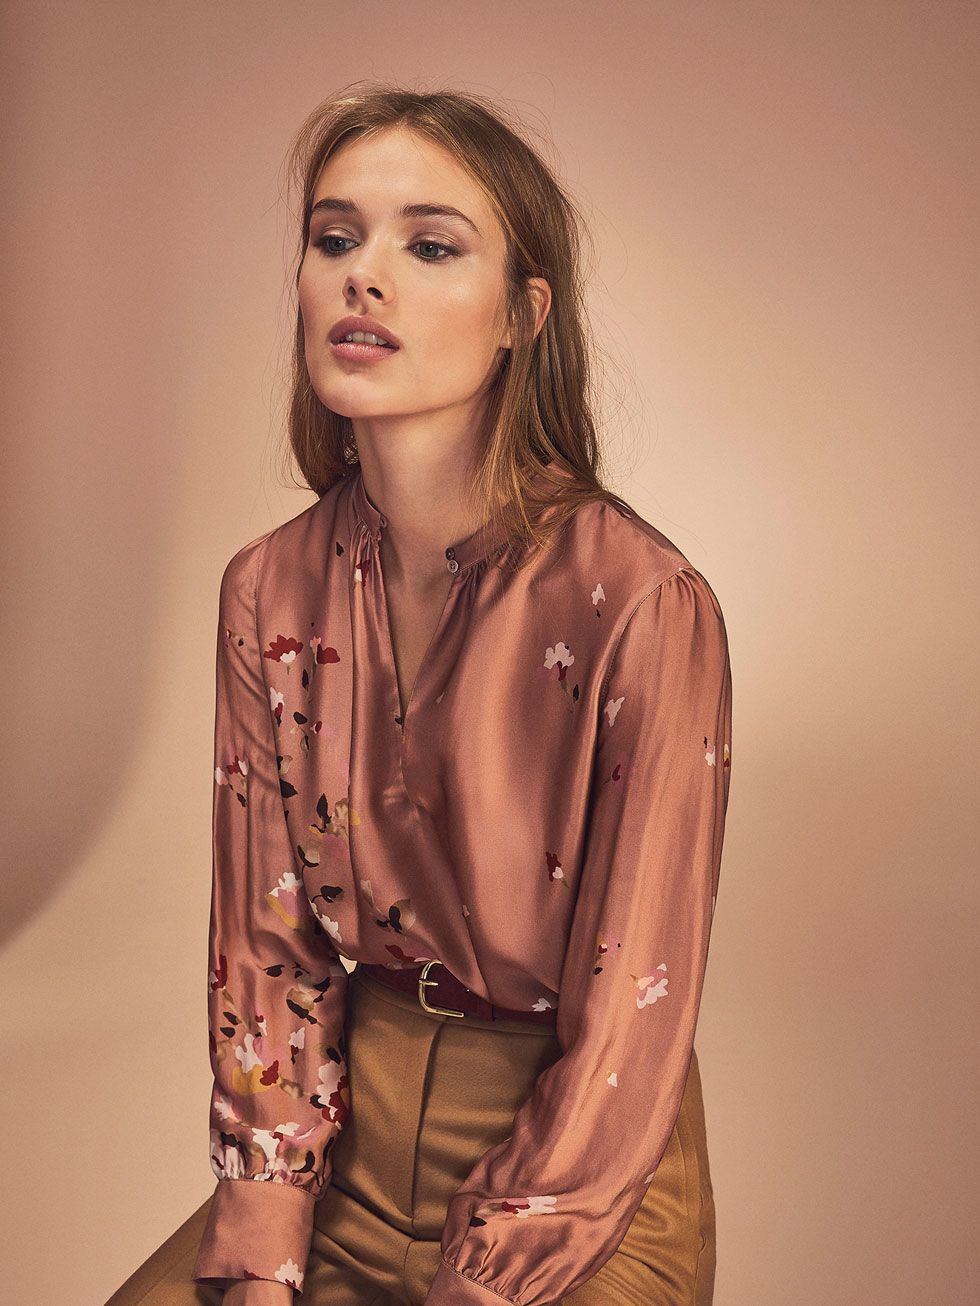 d12ee63d3b2 Autumn winter 2016 WOMEN´s PINK SATIN SHIRT WITH POSITIONAL FLOWERS at Massimo  Dutti for 89.5. Effortless elegance!